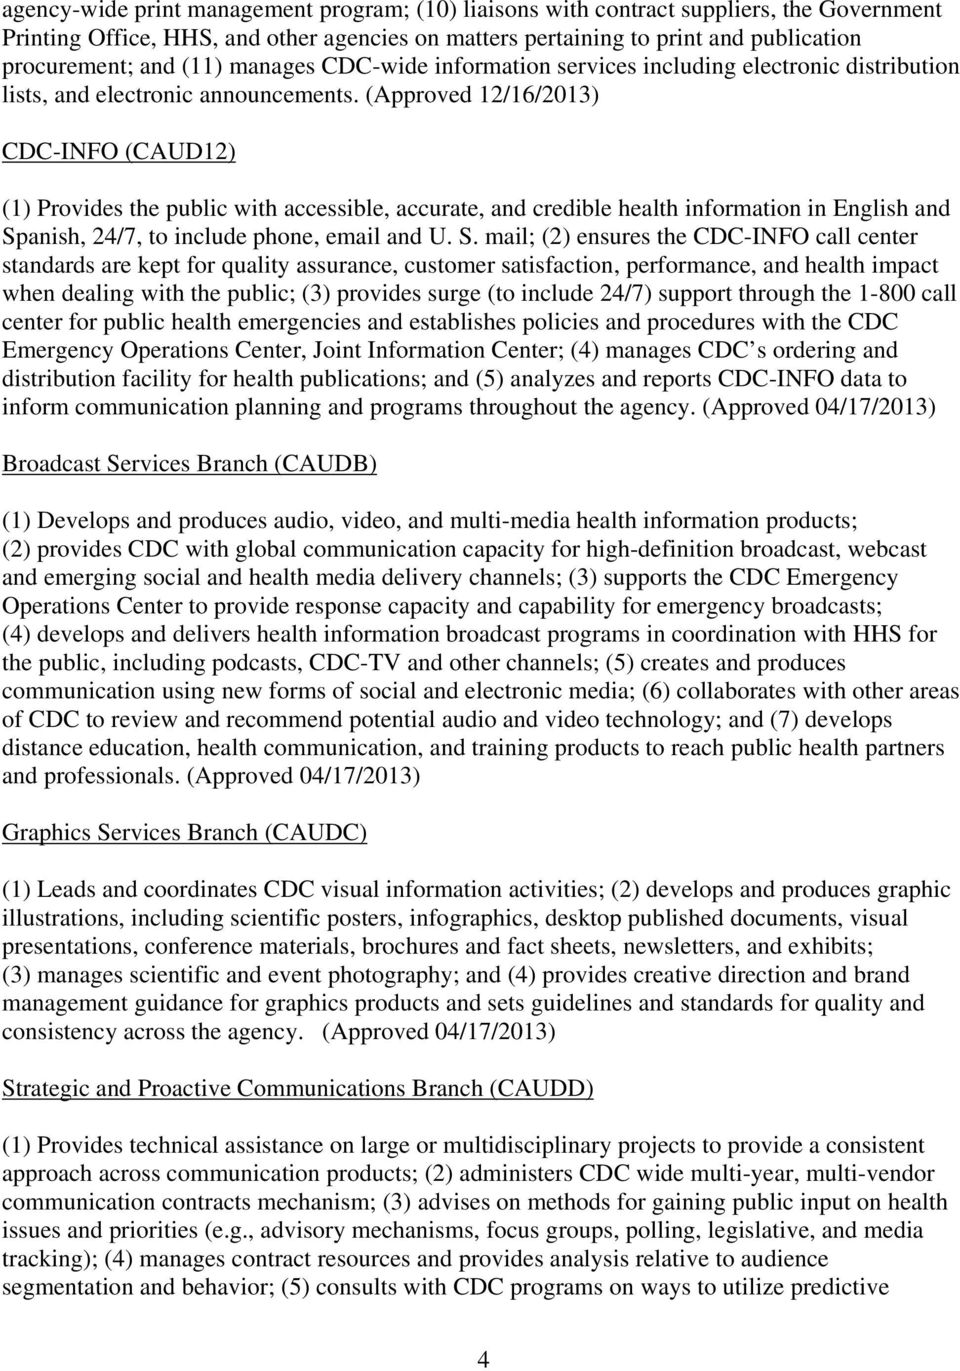 (Approved 12/16/2013) CDC-INFO (CAUD12) (1) Provides the public with accessible, accurate, and credible health information in English and Sp